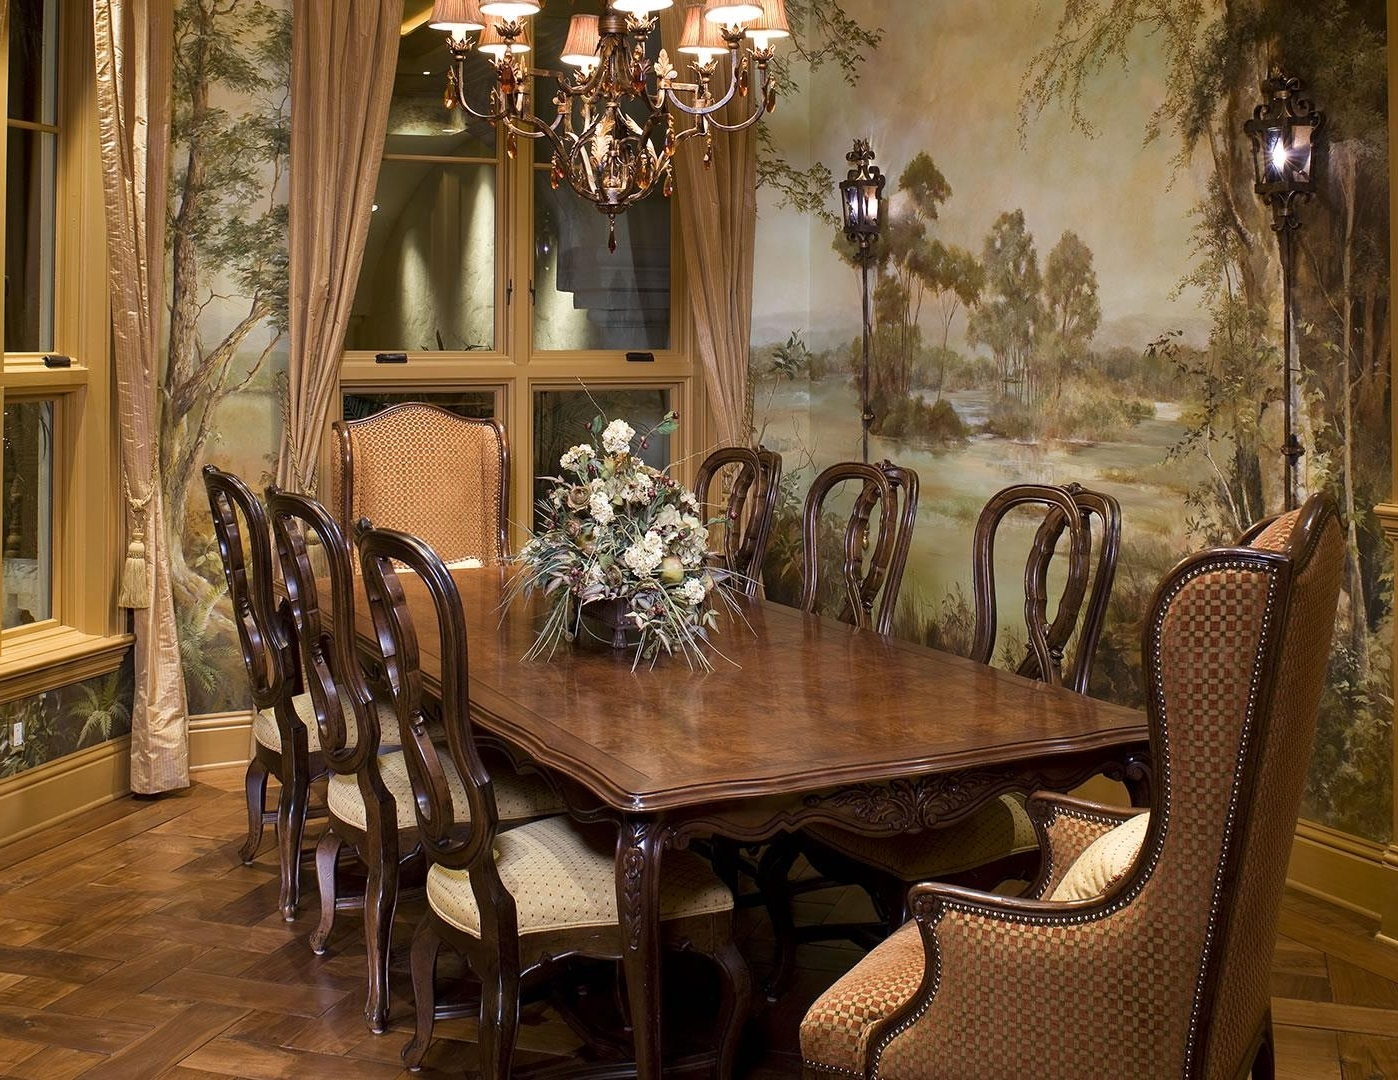 Formal Dining Room Wall Decor Remarkable 13 Wall Art For A Formal In Well Known Formal Dining Room Wall Art (View 15 of 15)